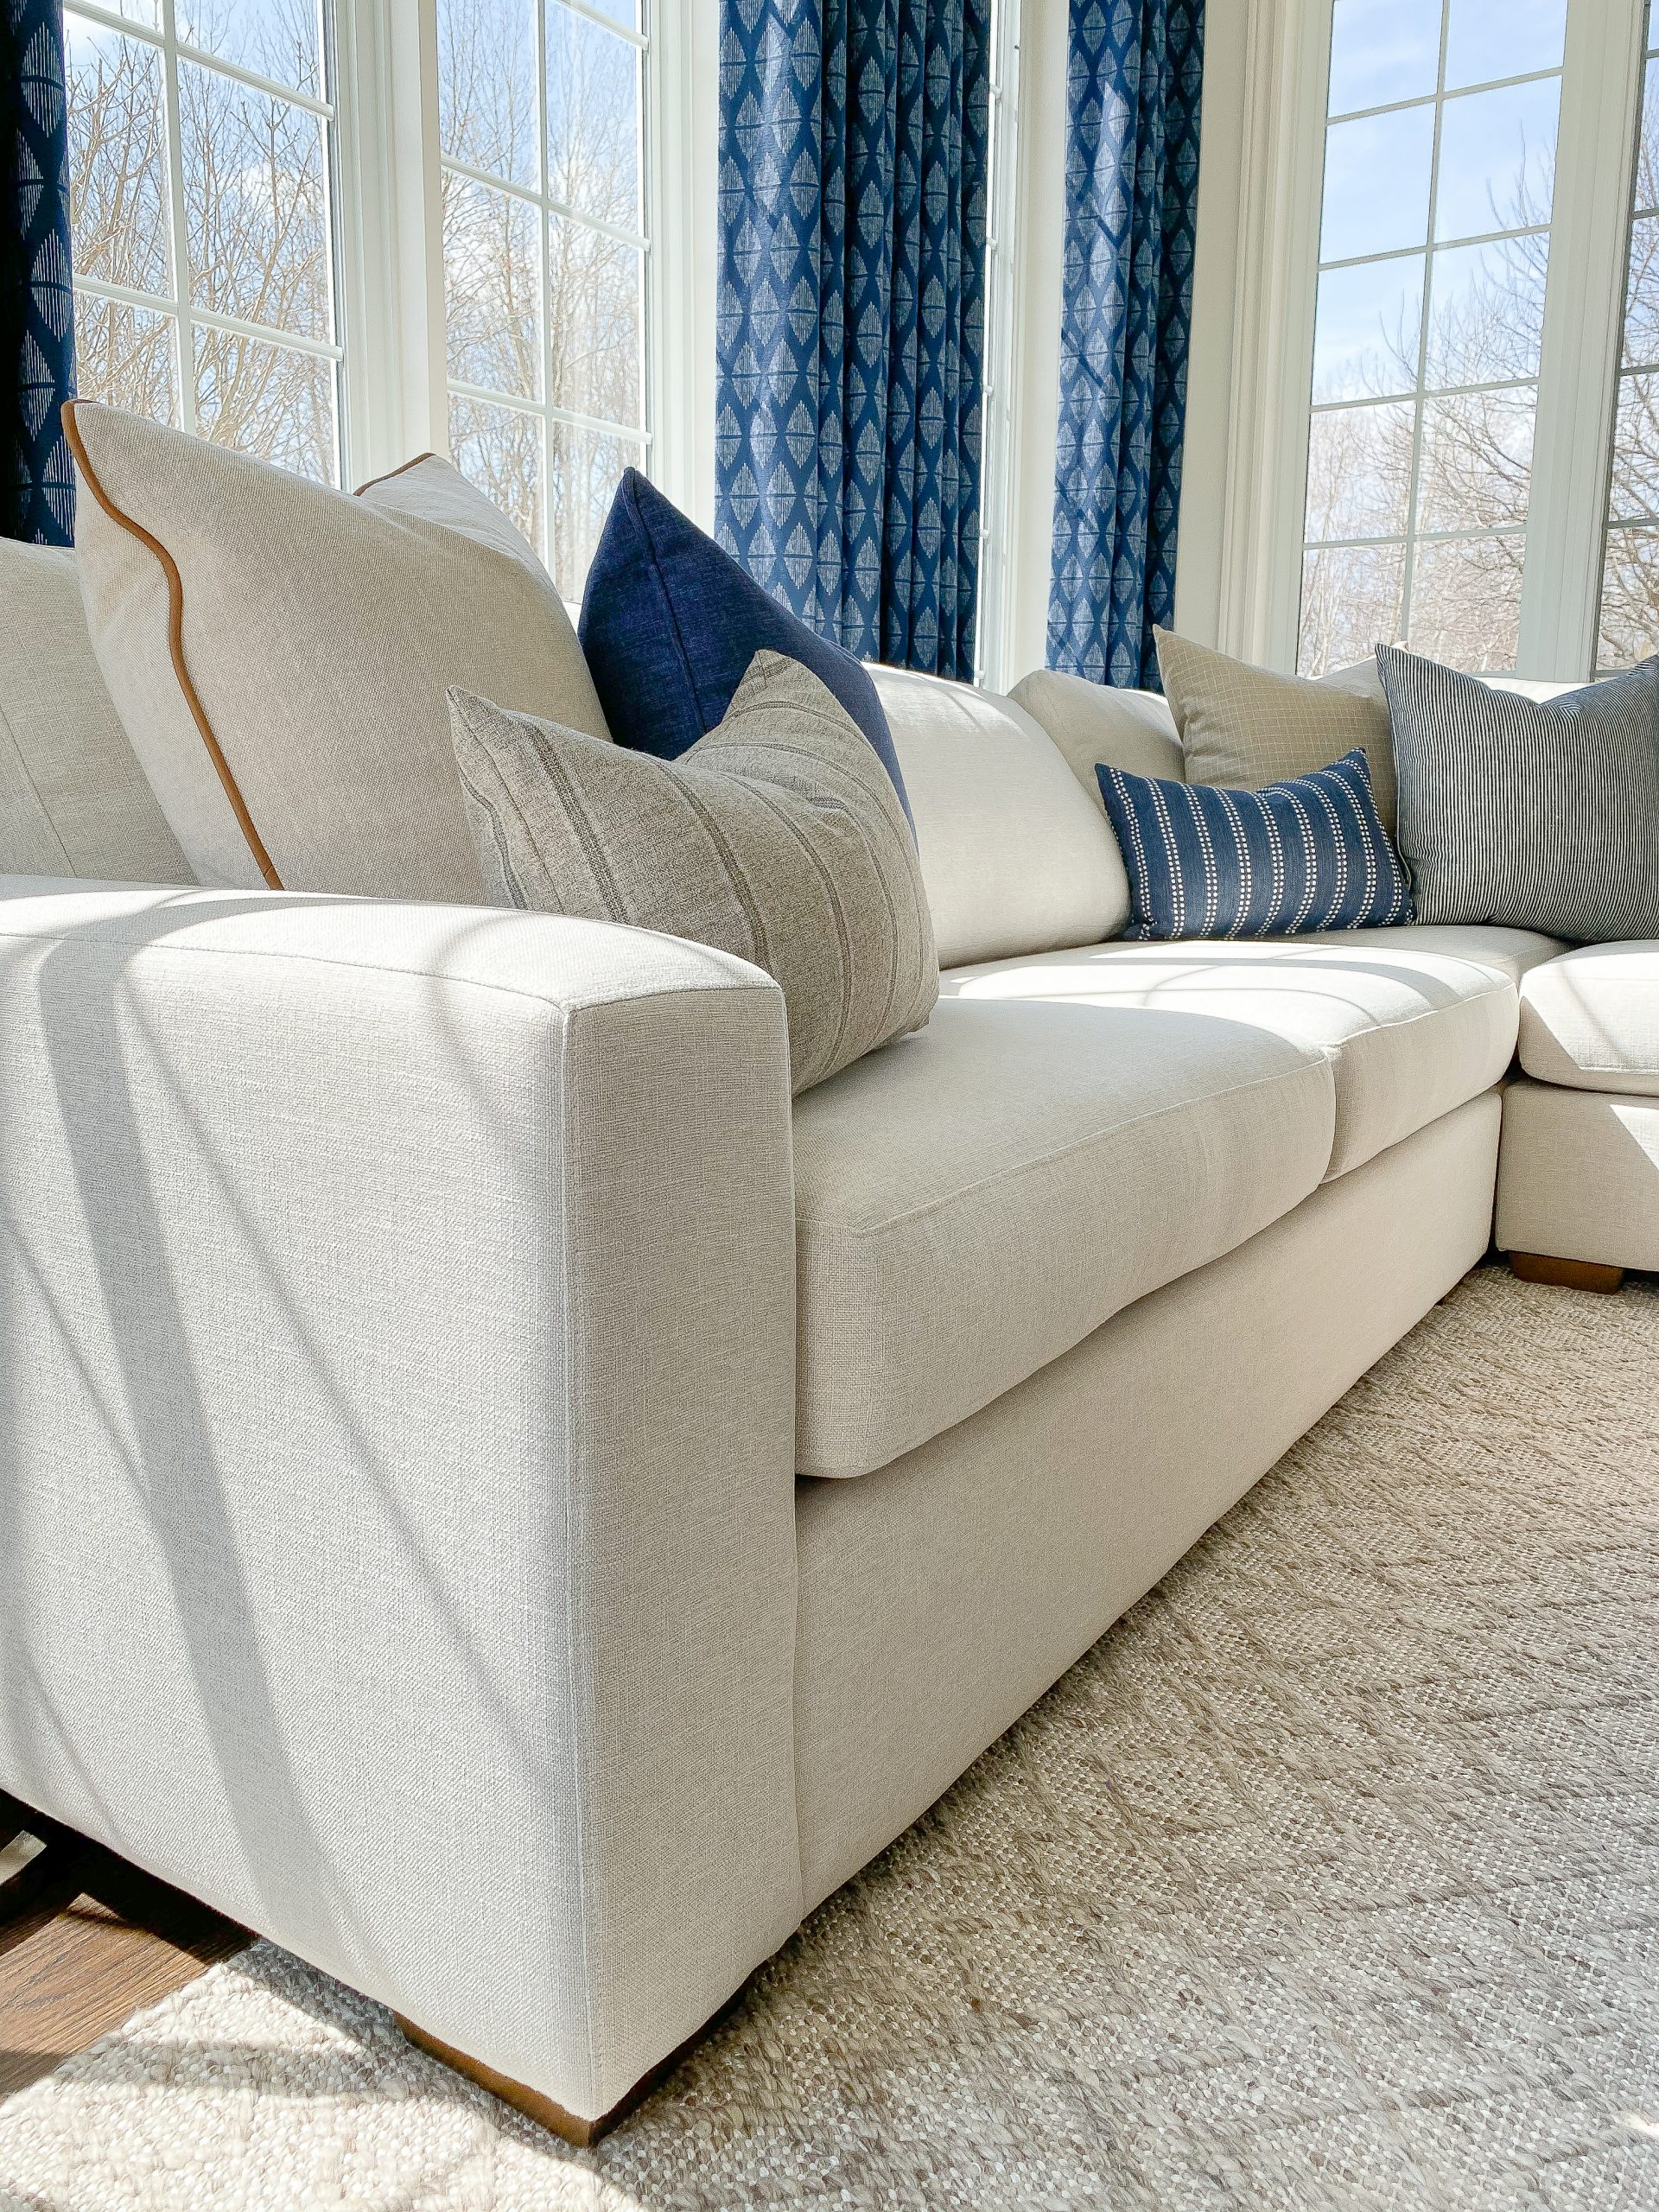 Interior designer in Chatham Ontario reveals a transitional lakeside retreat with modern sectional, custom drapery, and colourful pillows